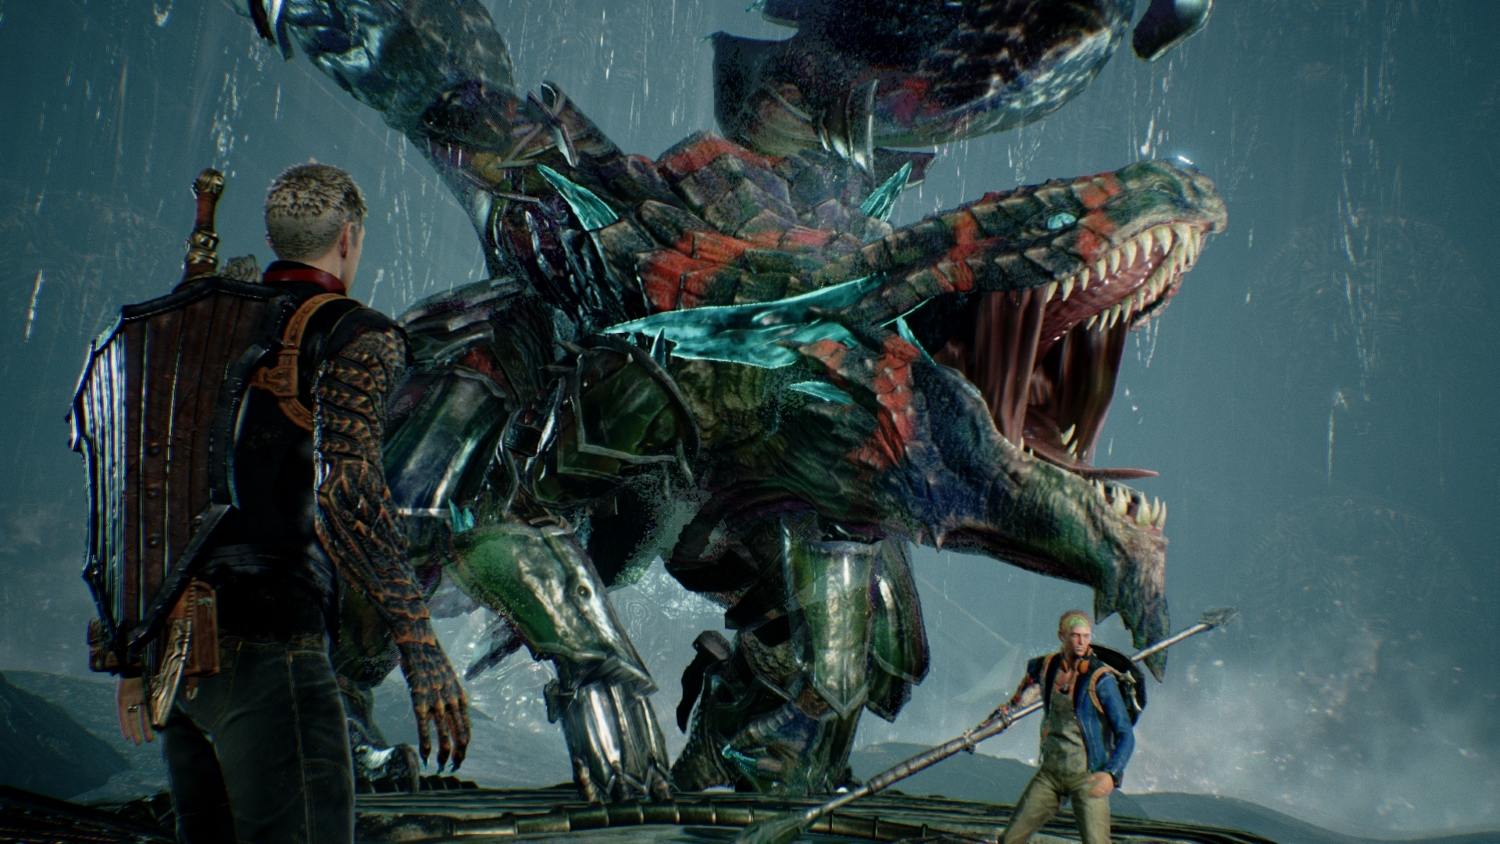 Scalebound Hideki Kamiya interview – 'I'm not really concerned about making it so everybody loves it'